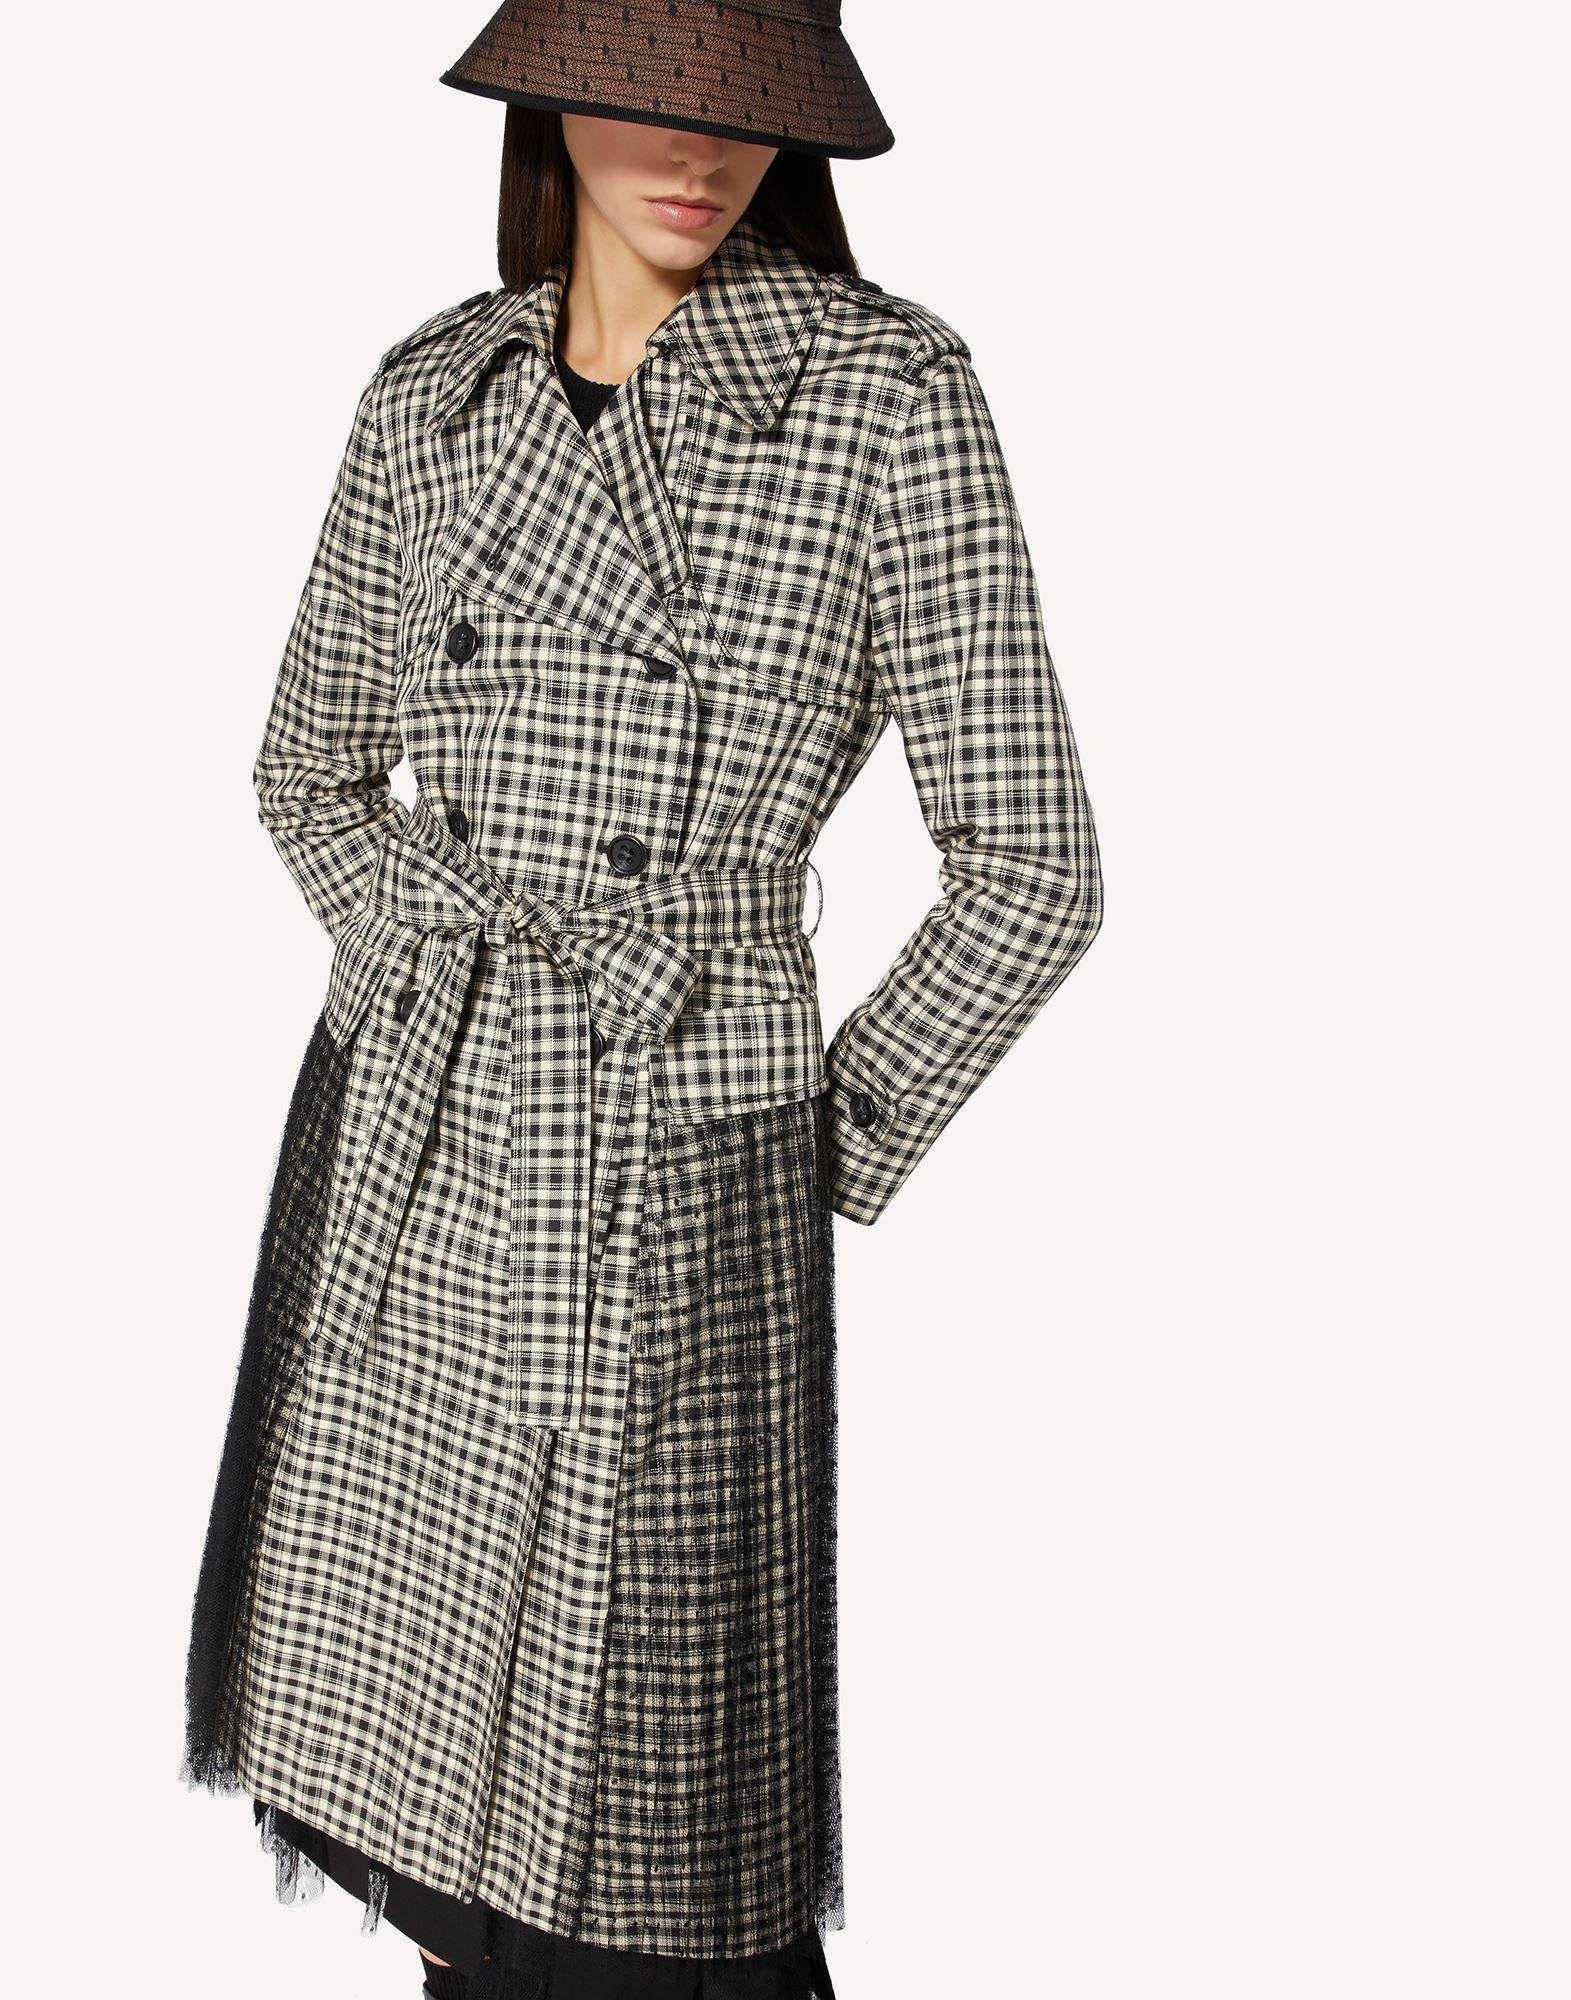 VICHY CHECK TRENCH COAT WITH PLEATING DETAIL 3